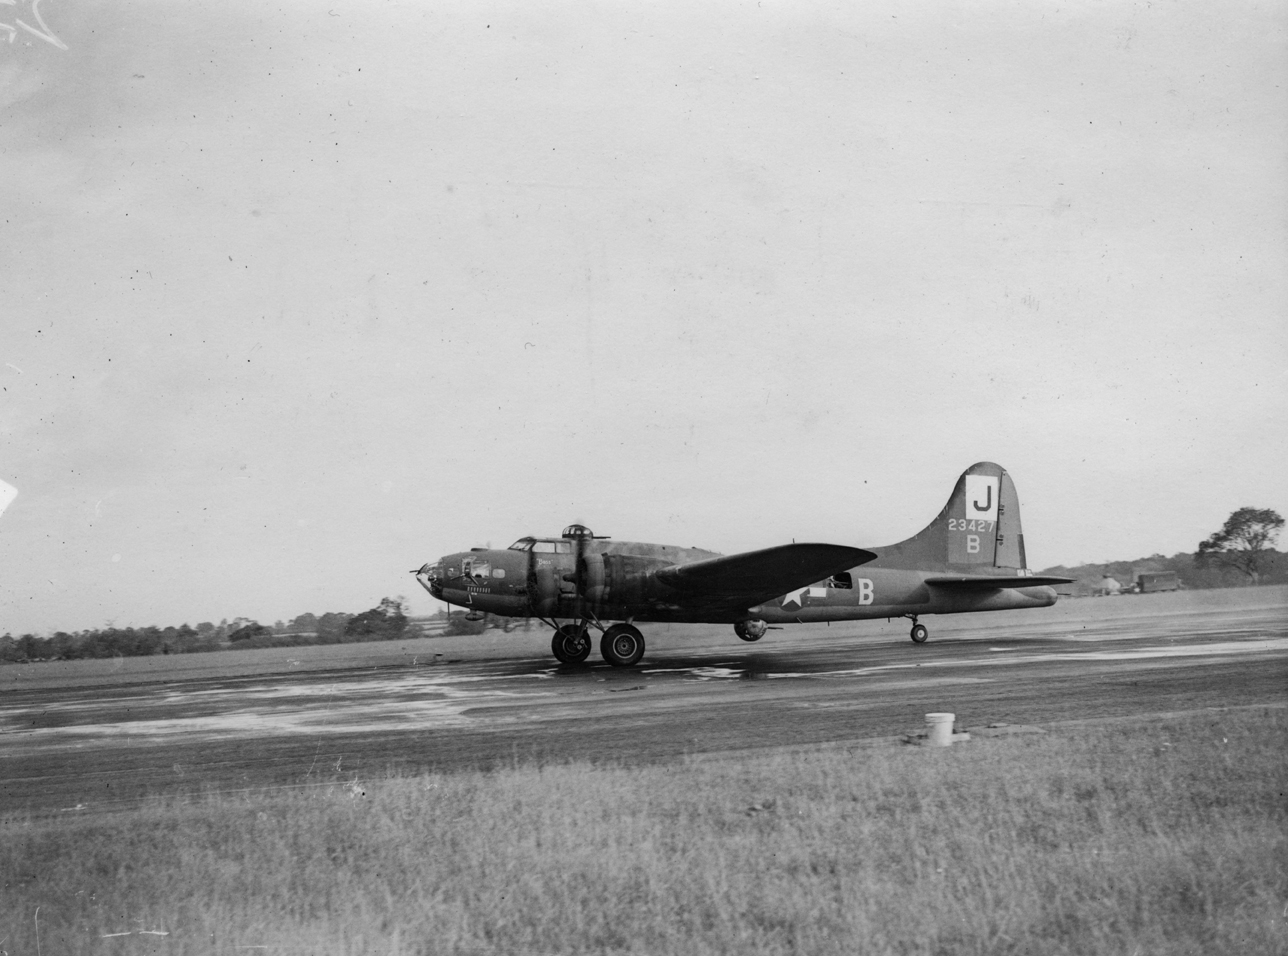 B-17 #42-3427 / Six Nights in Telergma aka Arabian Nuts aka Canadian Club